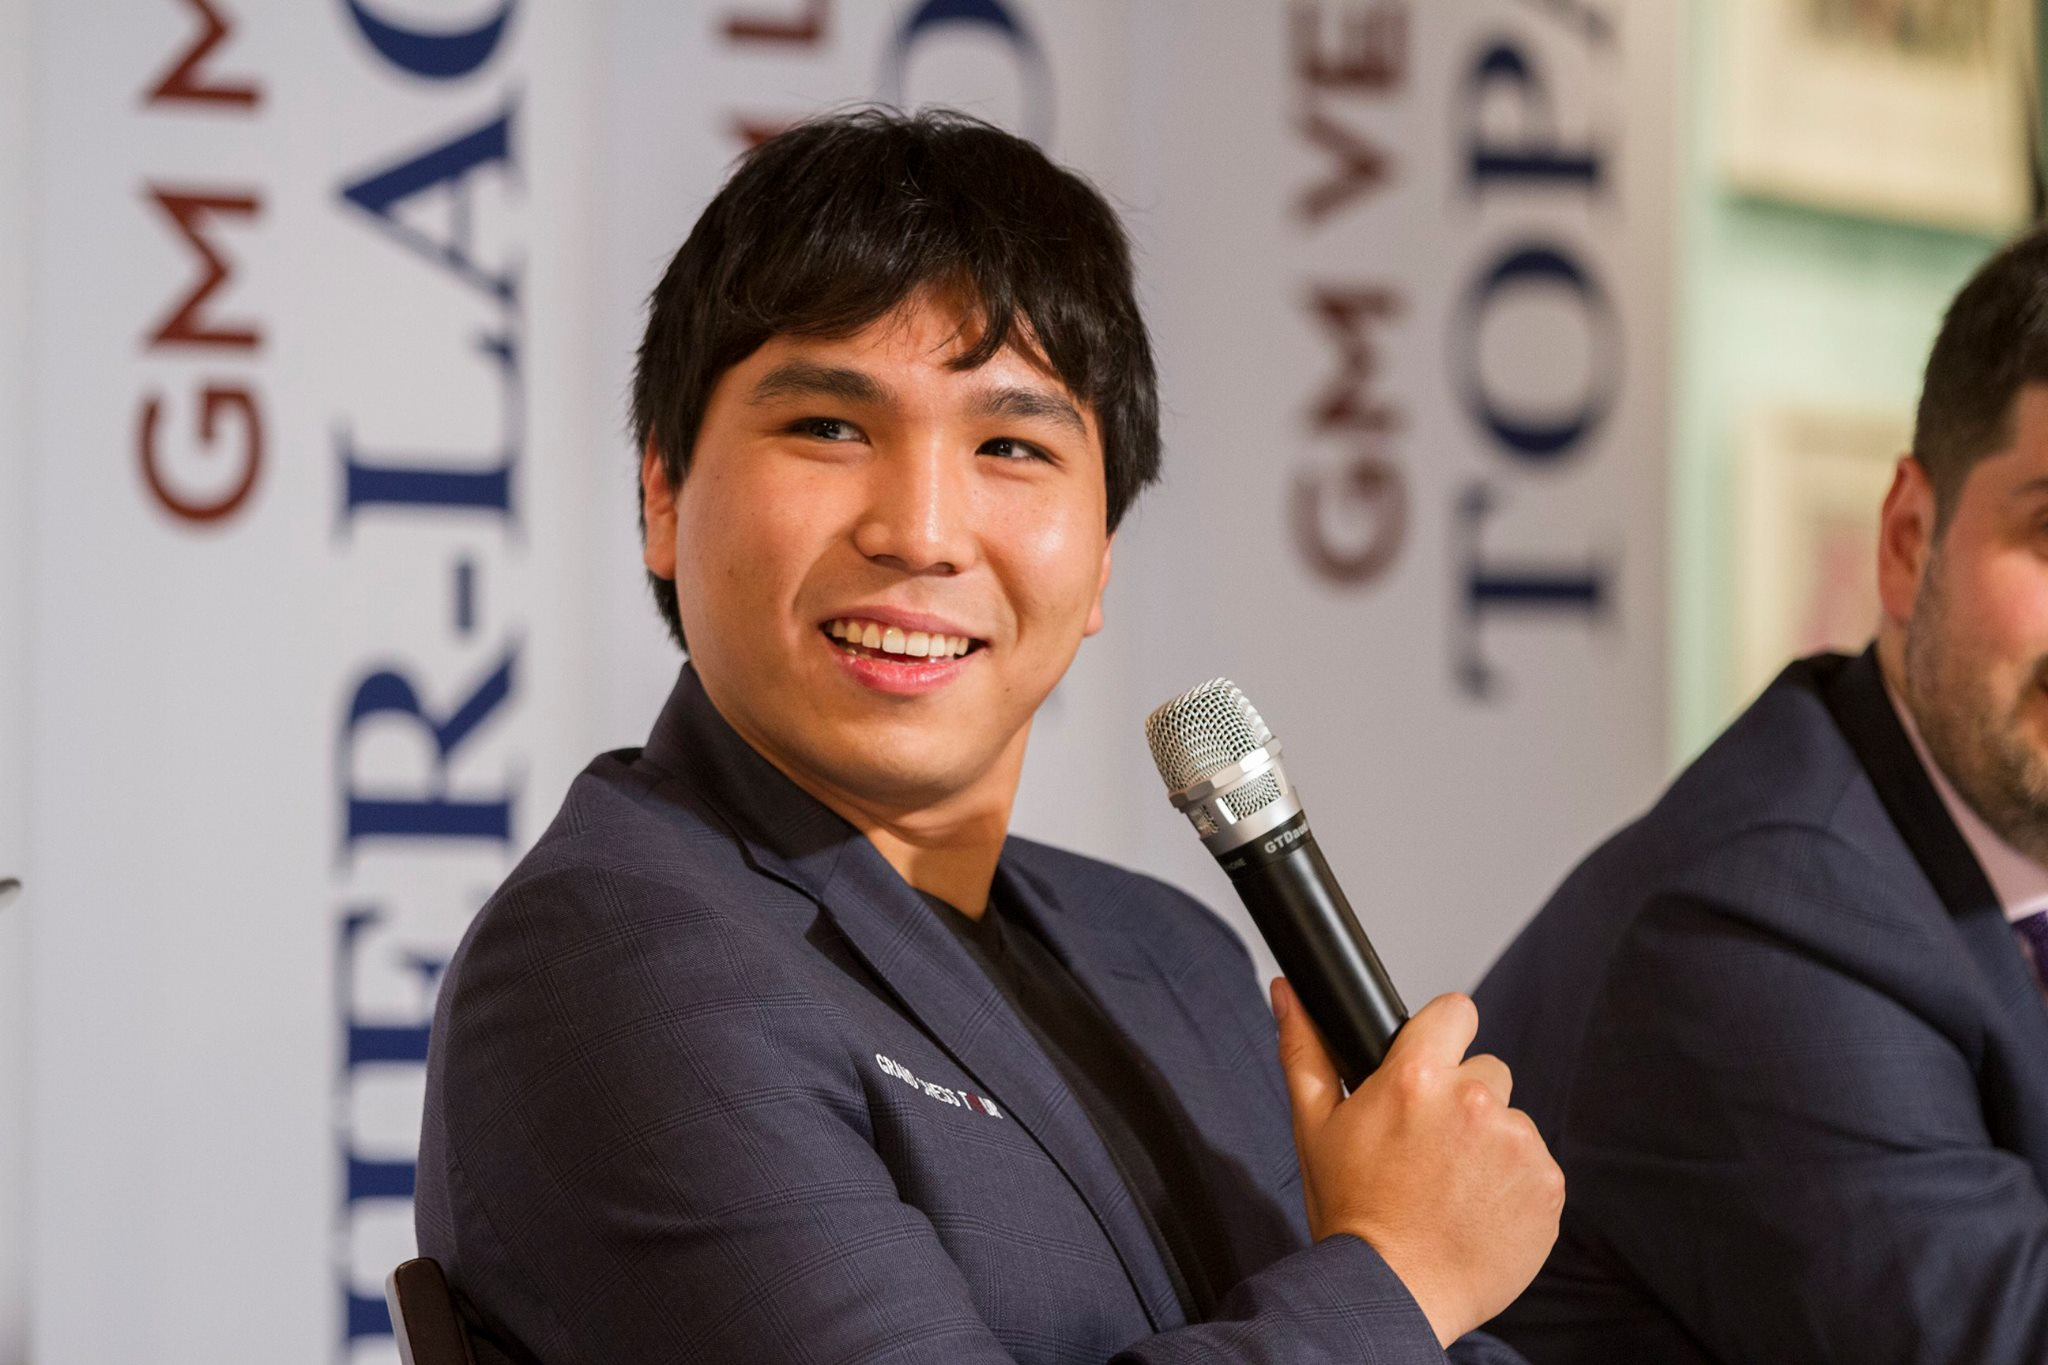 Wesley So at the Sinquefield Cup (Photo by Spectrum Studios)